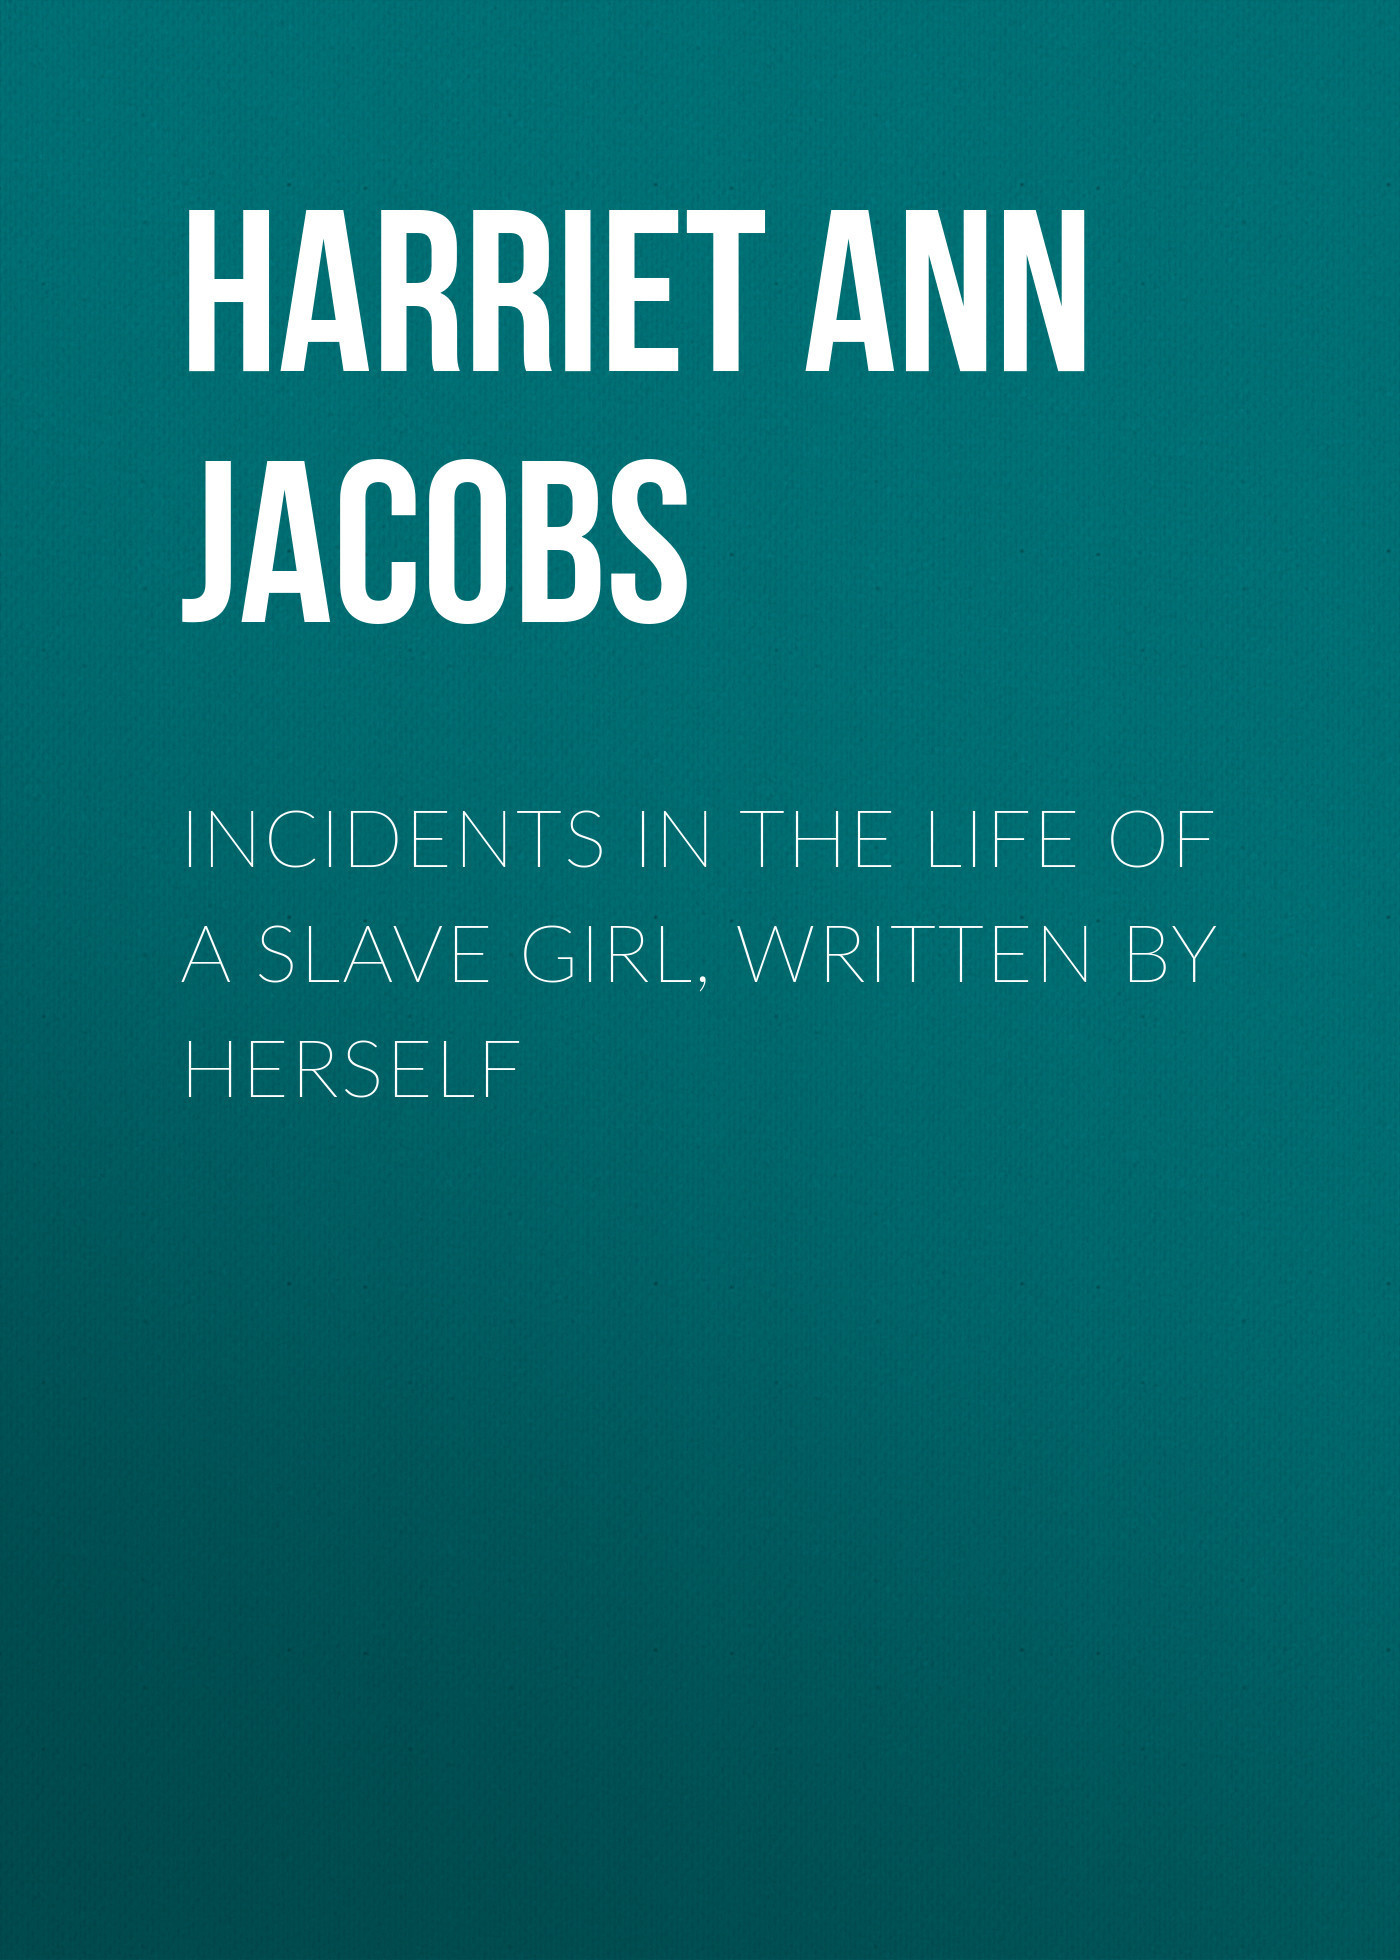 Harriet Ann Jacobs Incidents in the Life of a Slave Girl, Written by Herself written in stone